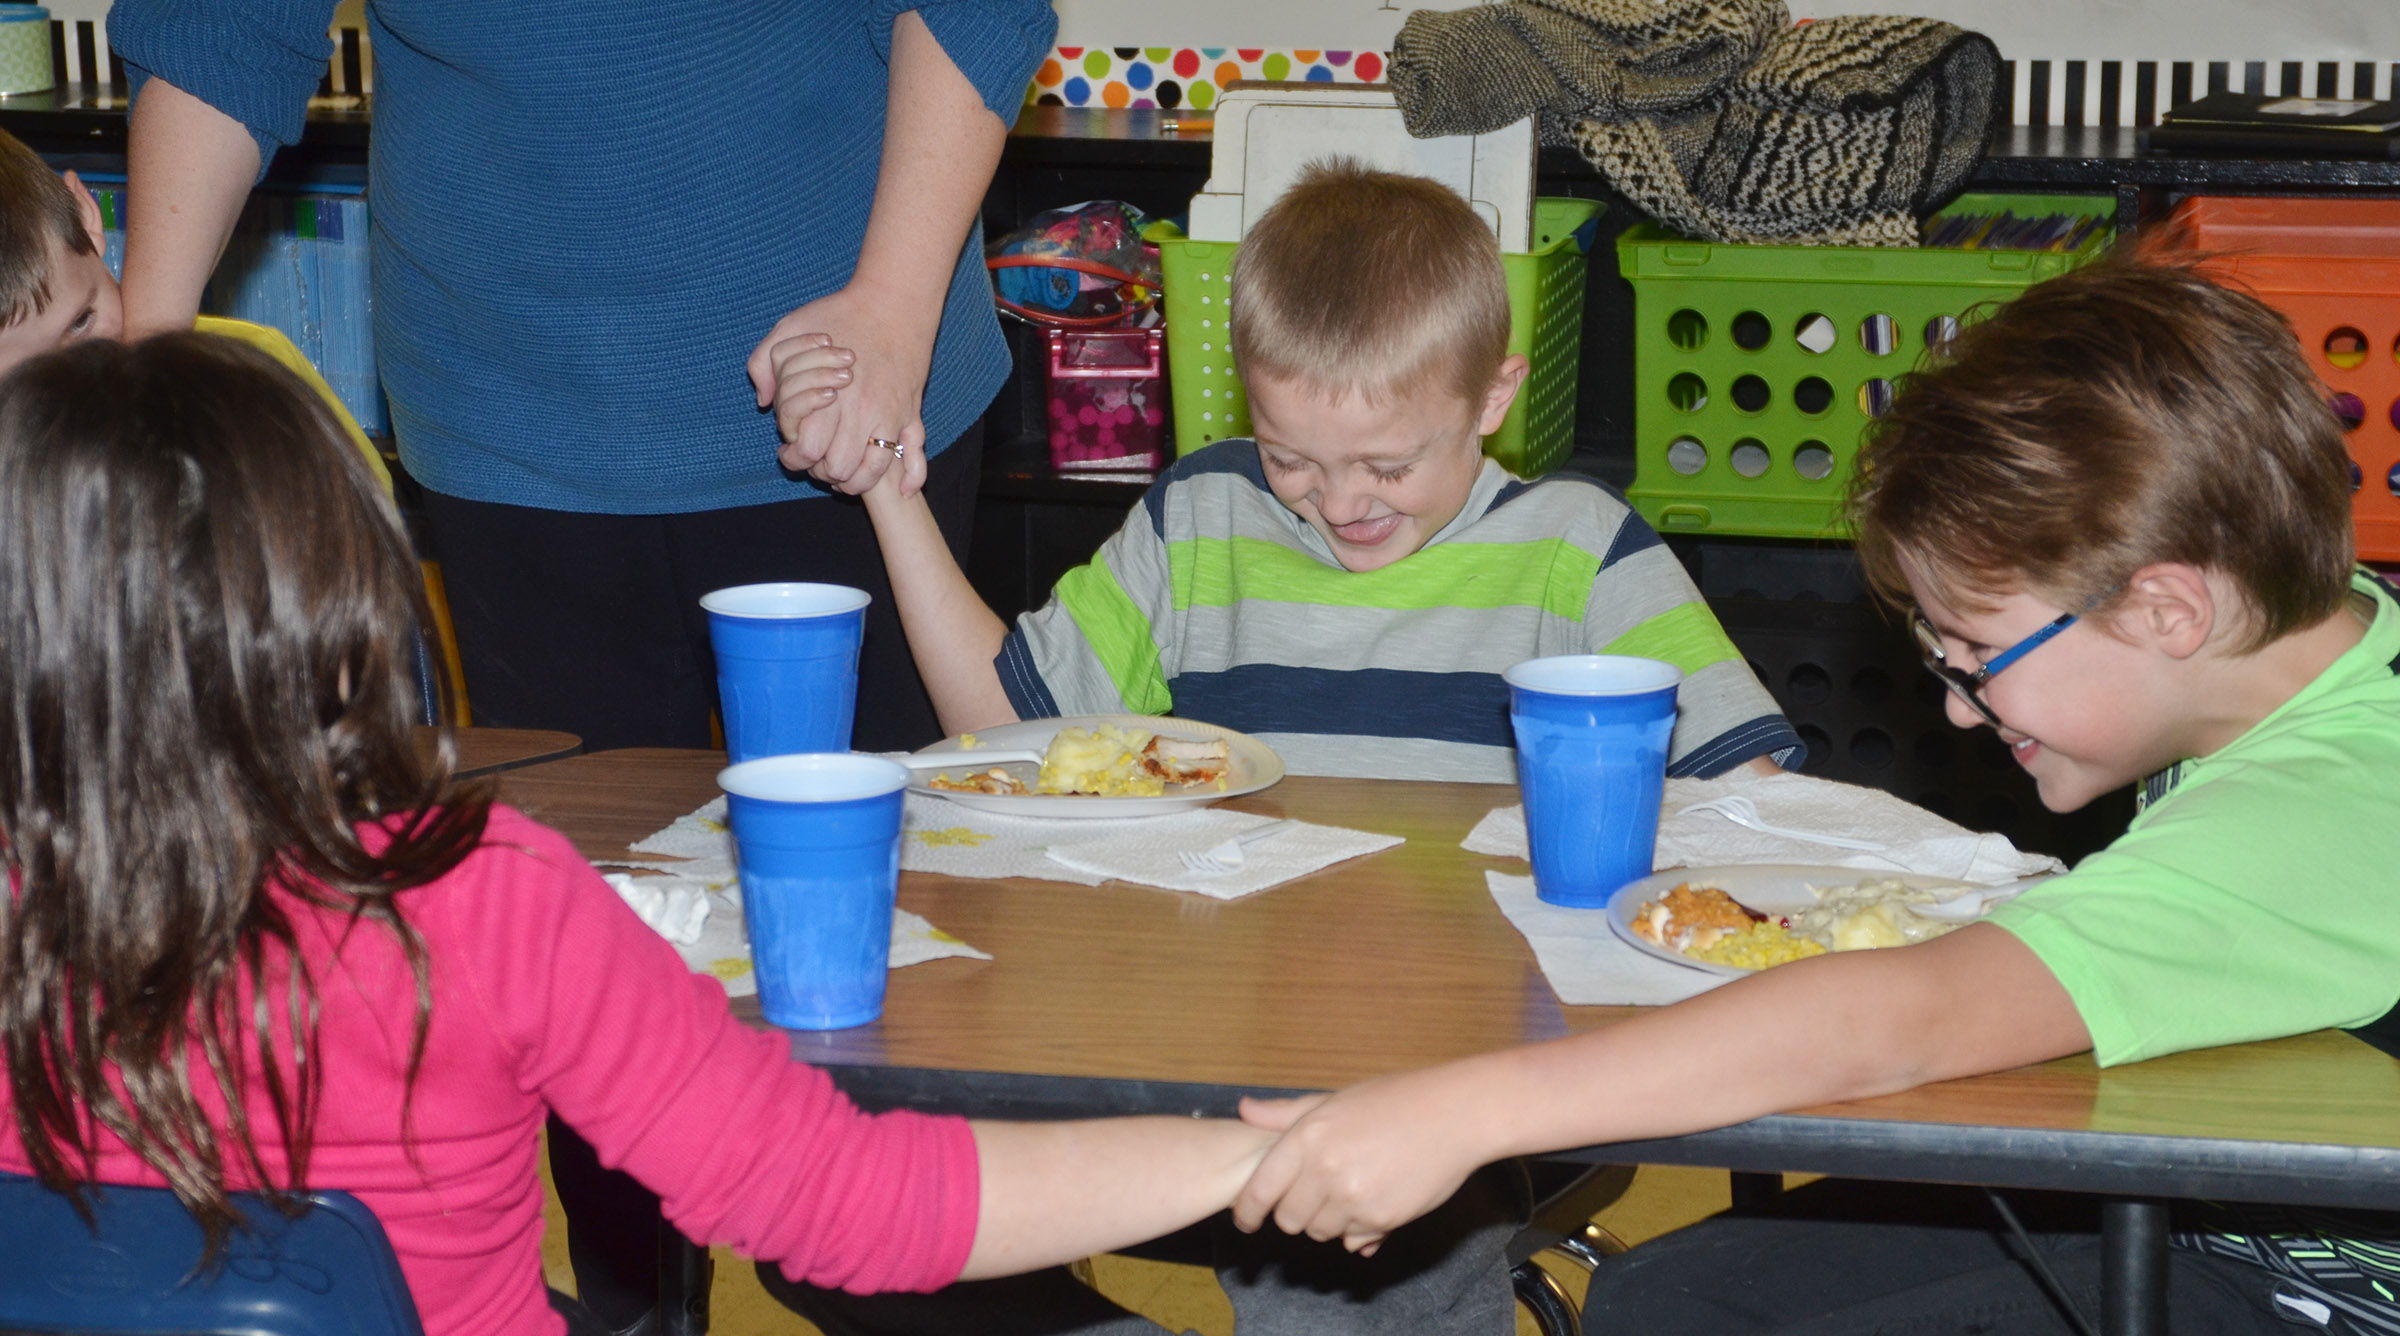 CES third-graders Trenton Harris, at left, and Dalton Shively pray with their classmates before enjoying their Thanksgiving feast.